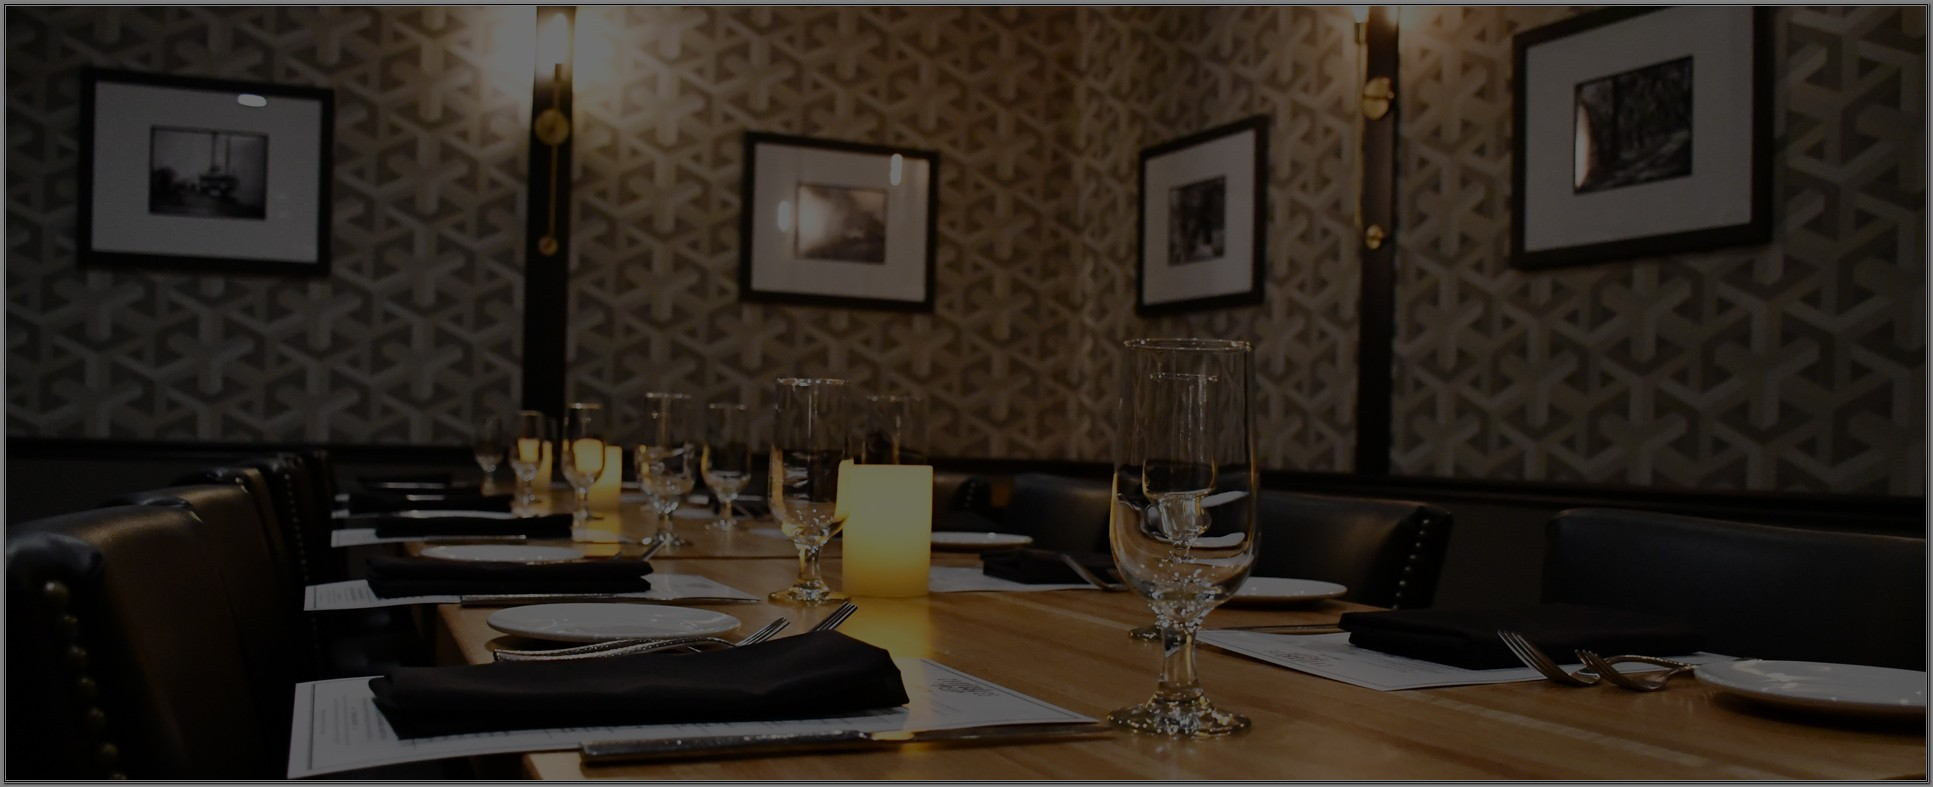 Restaurants With Private Dining Rooms Jacksonville Fl